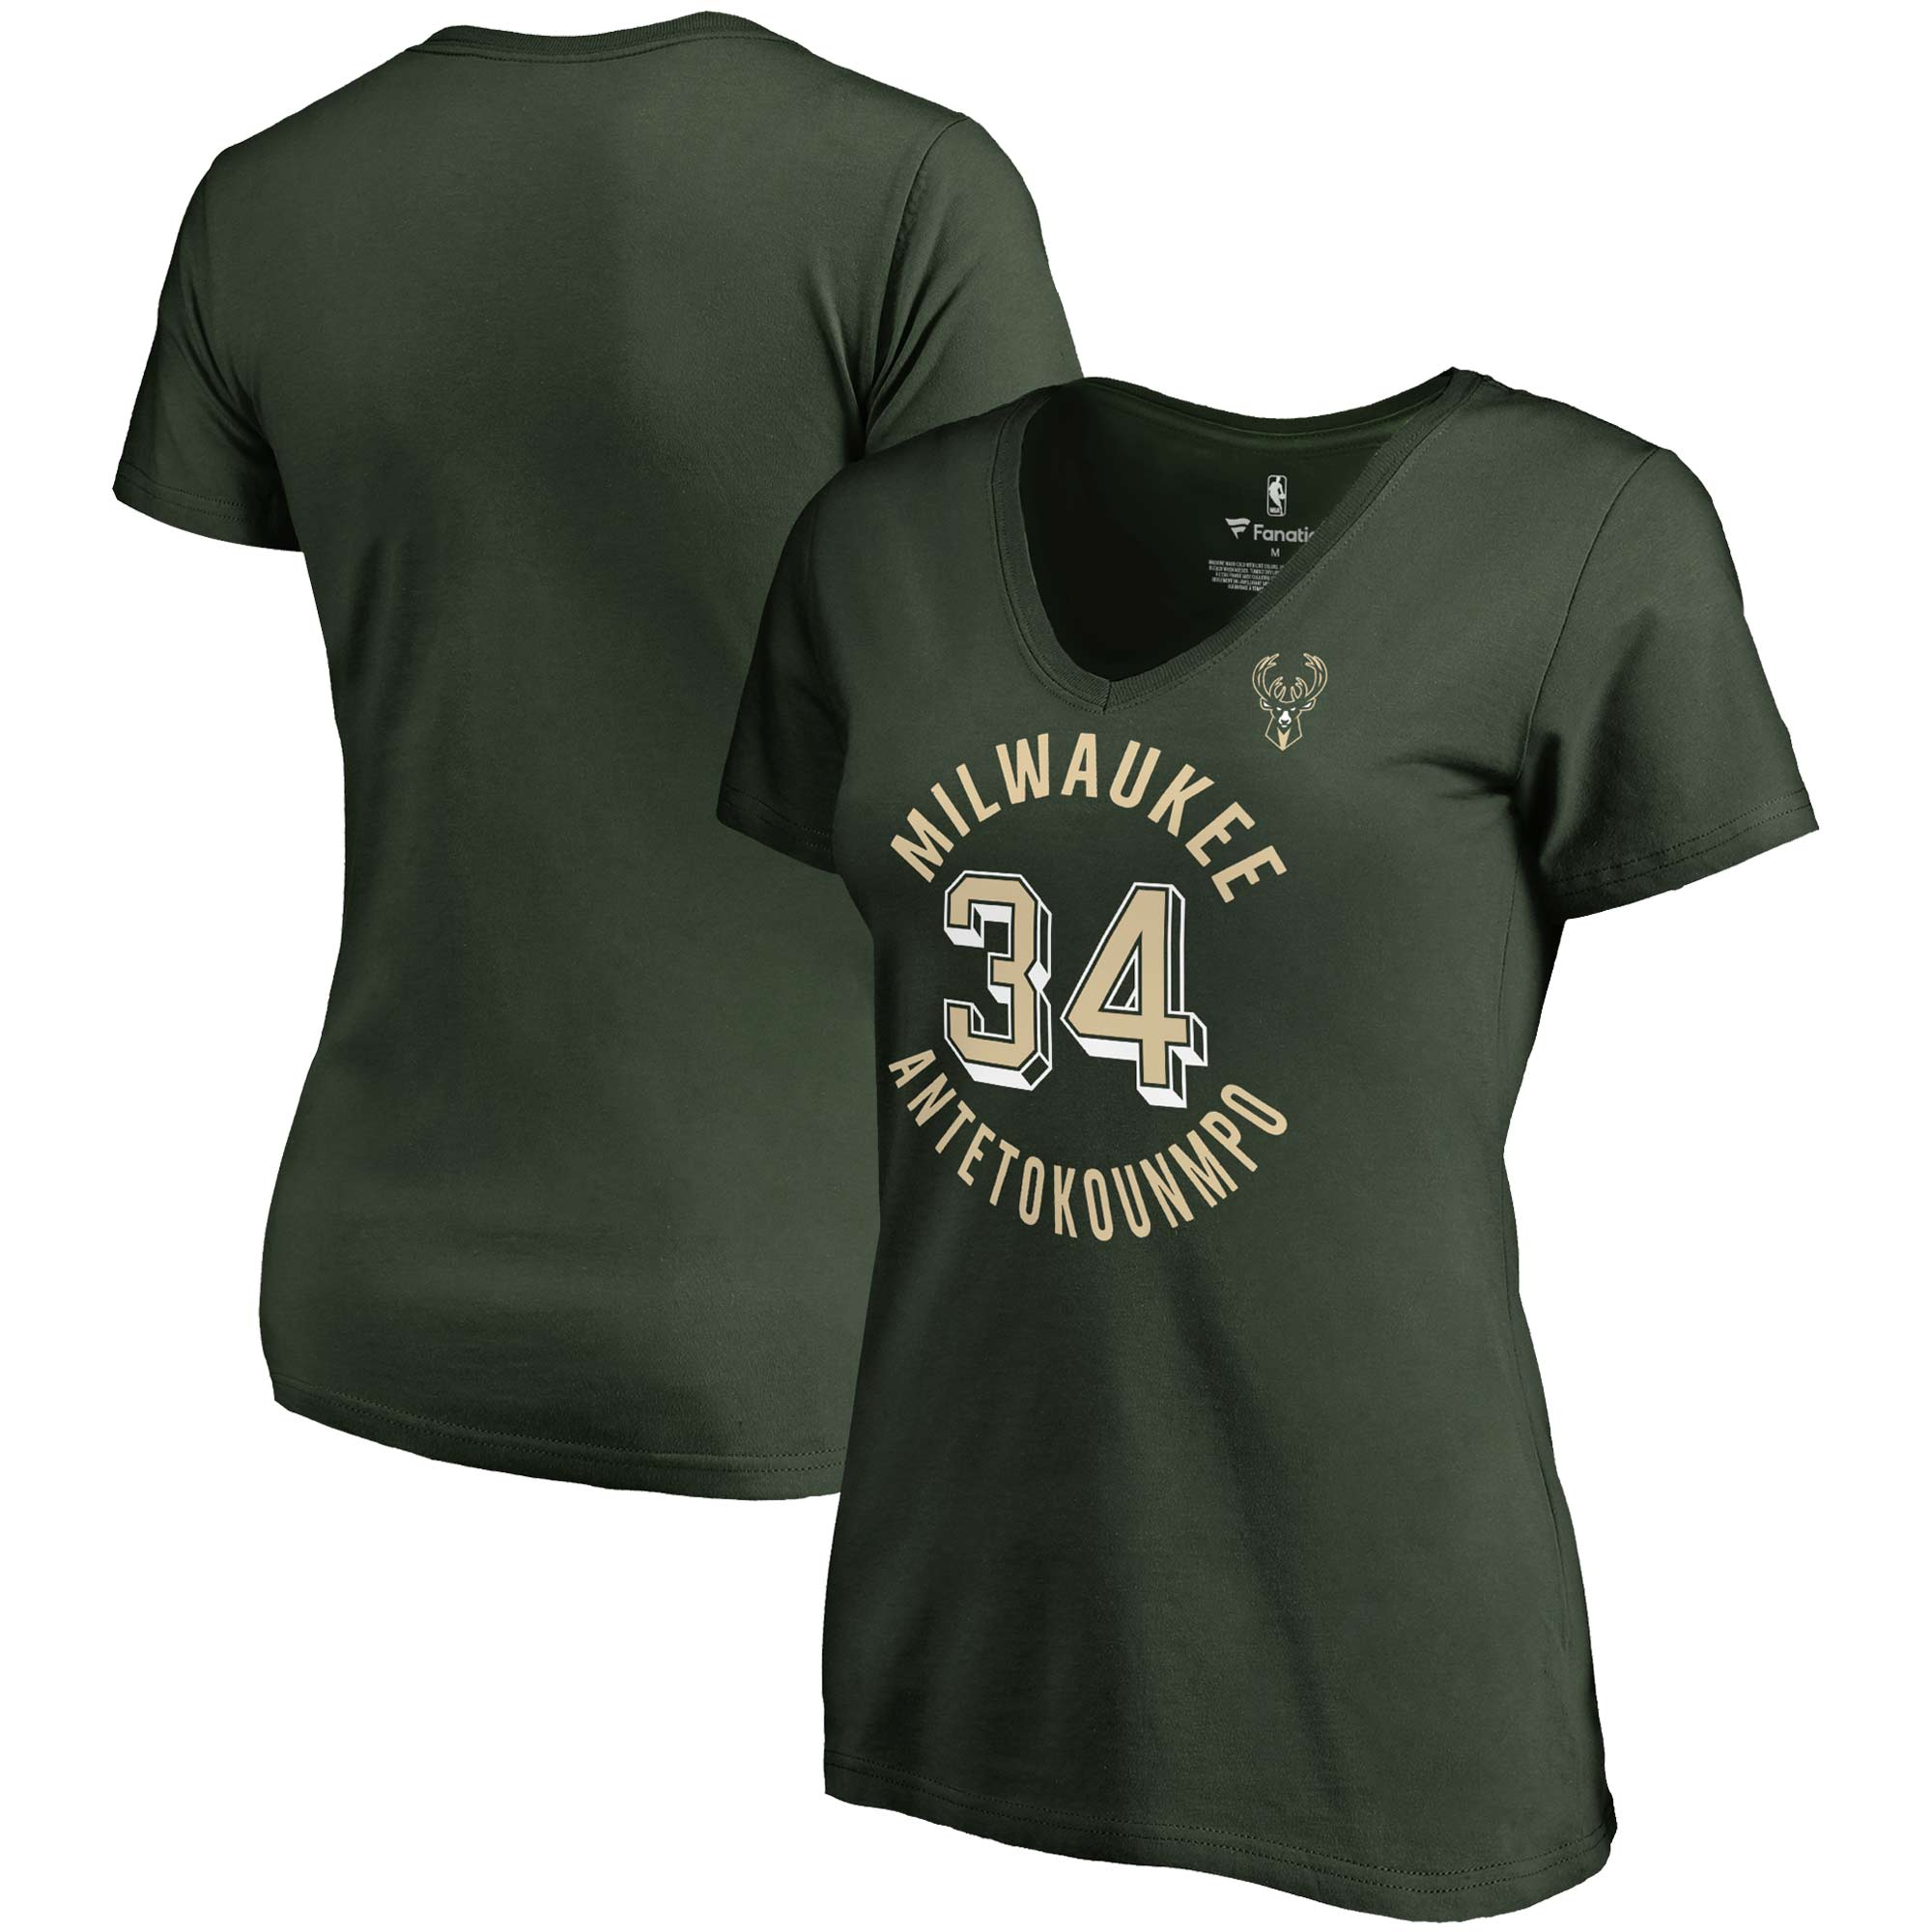 Giannis Antetokounmpo Milwaukee Bucks Fanatics Branded Women's Notable Name & Number V-Neck T-Shirt - Hunter Green